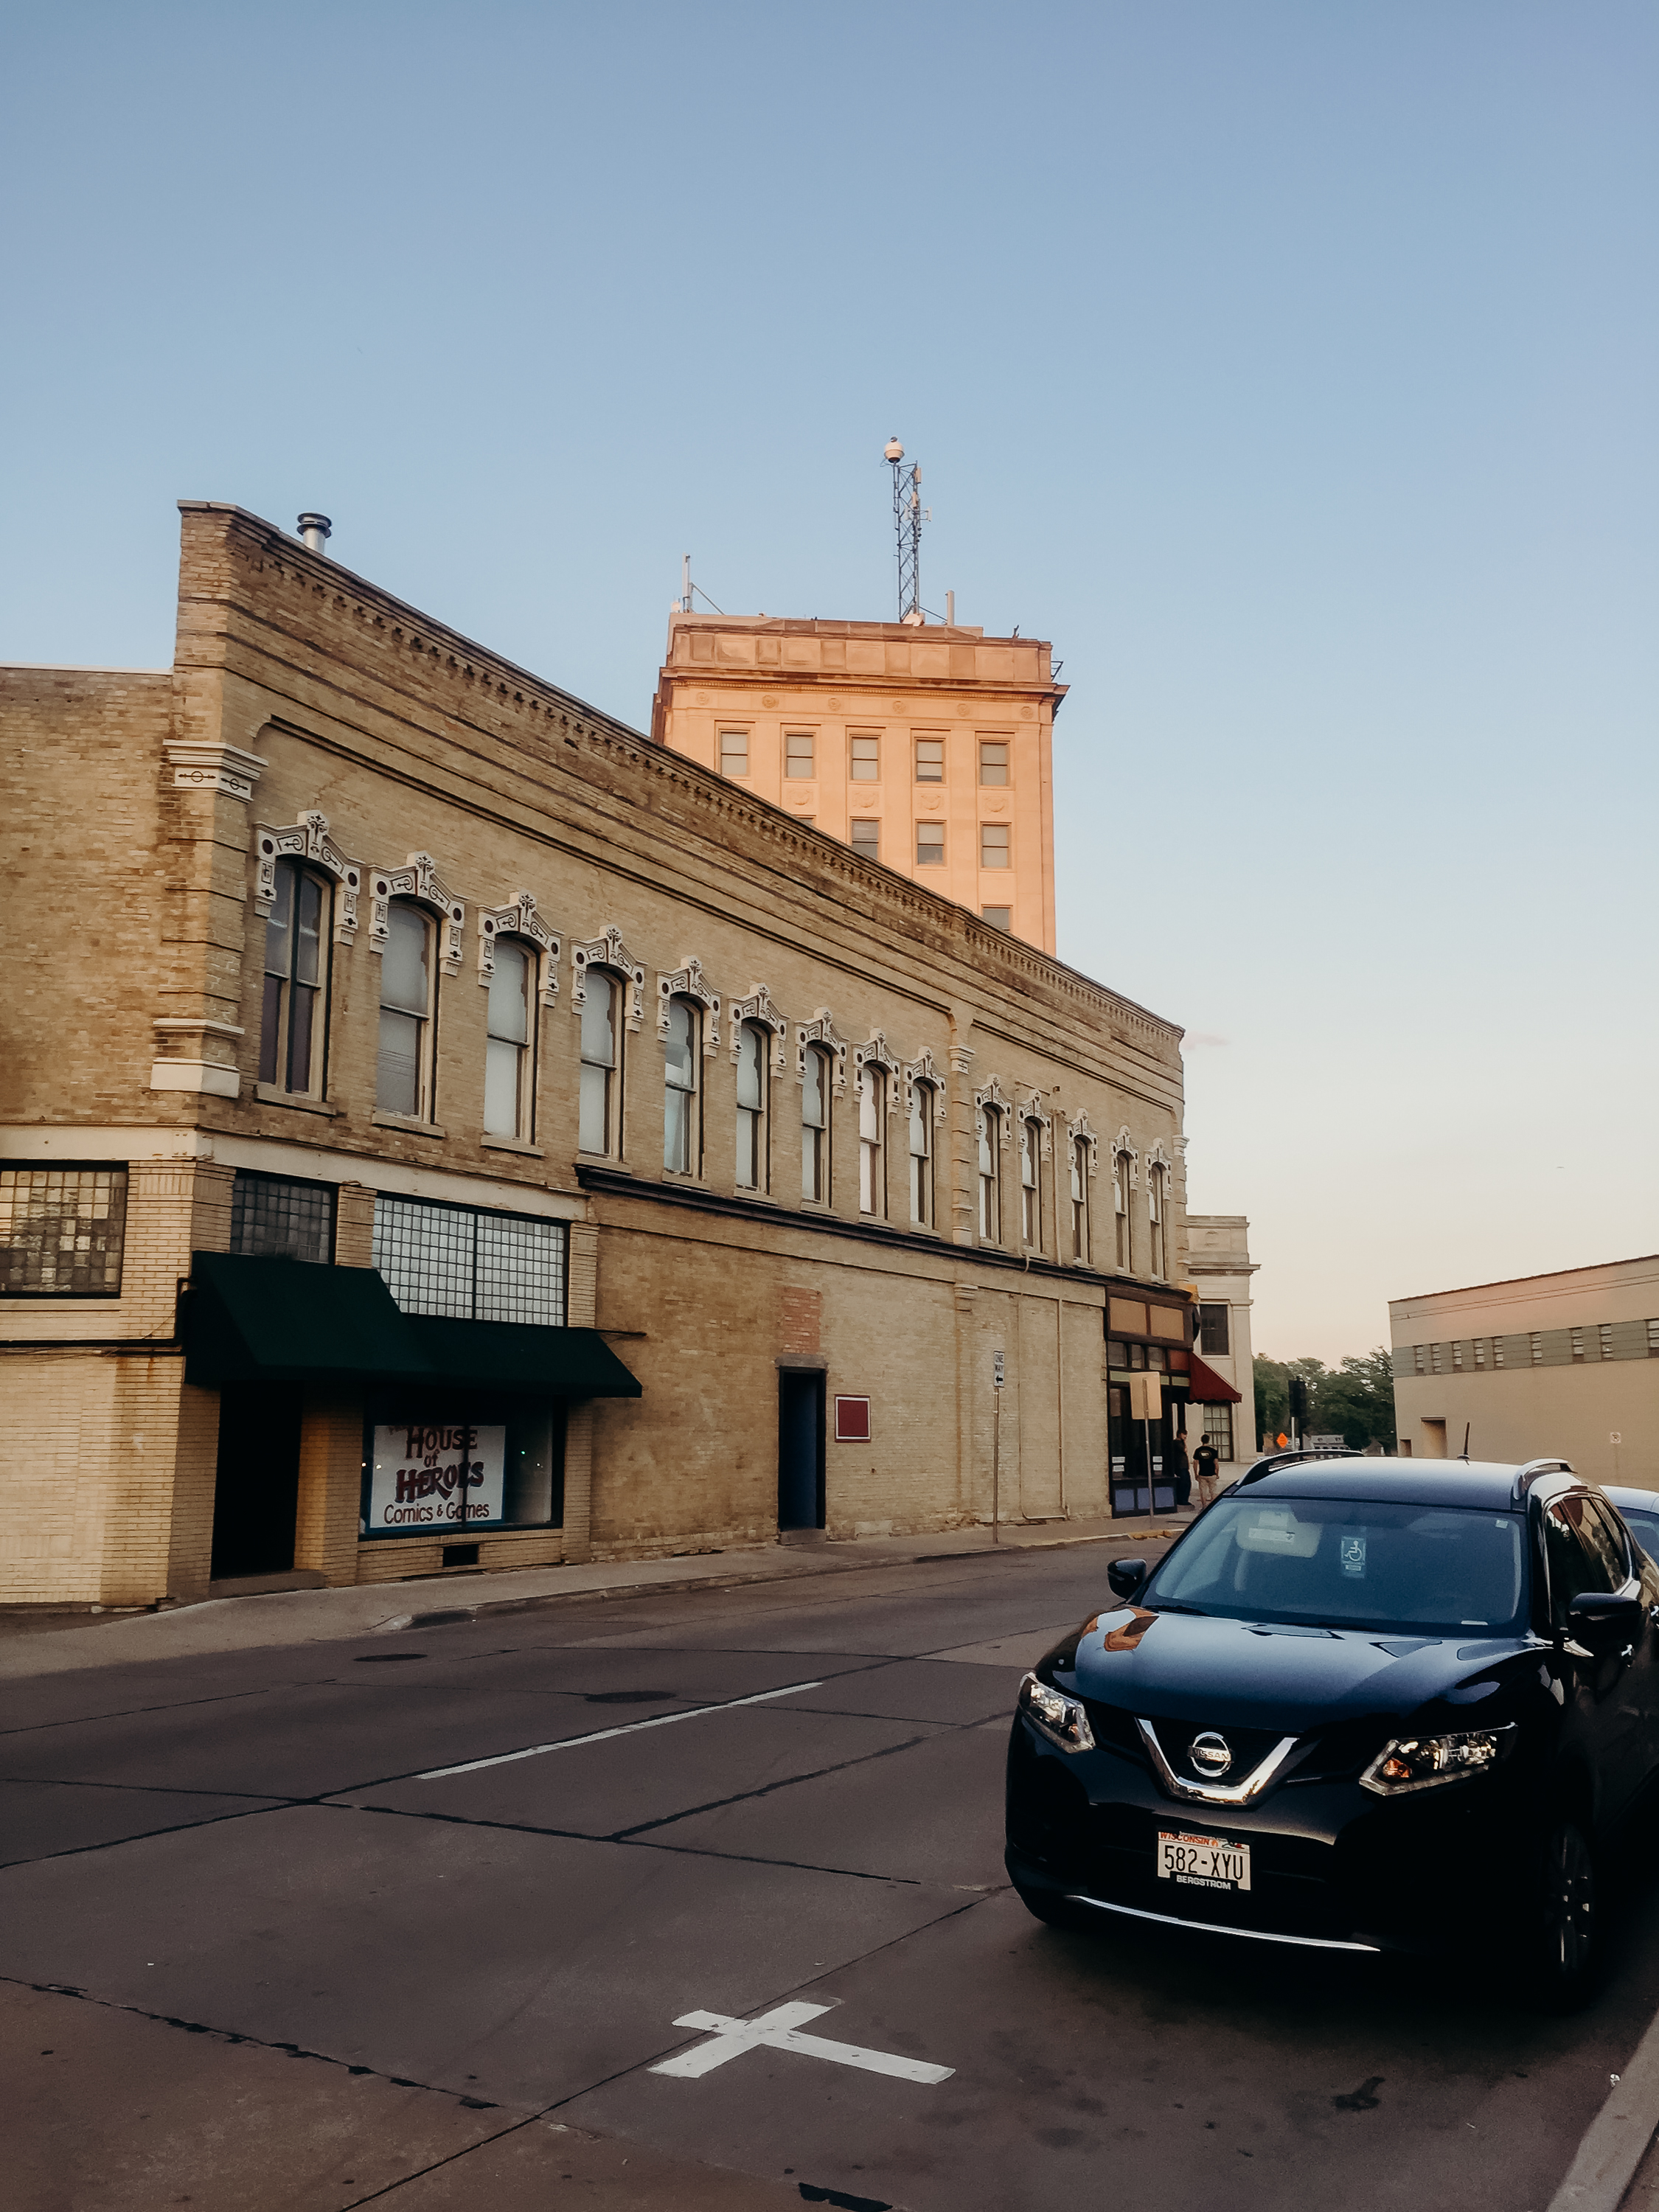 Downtown Oshkosh.